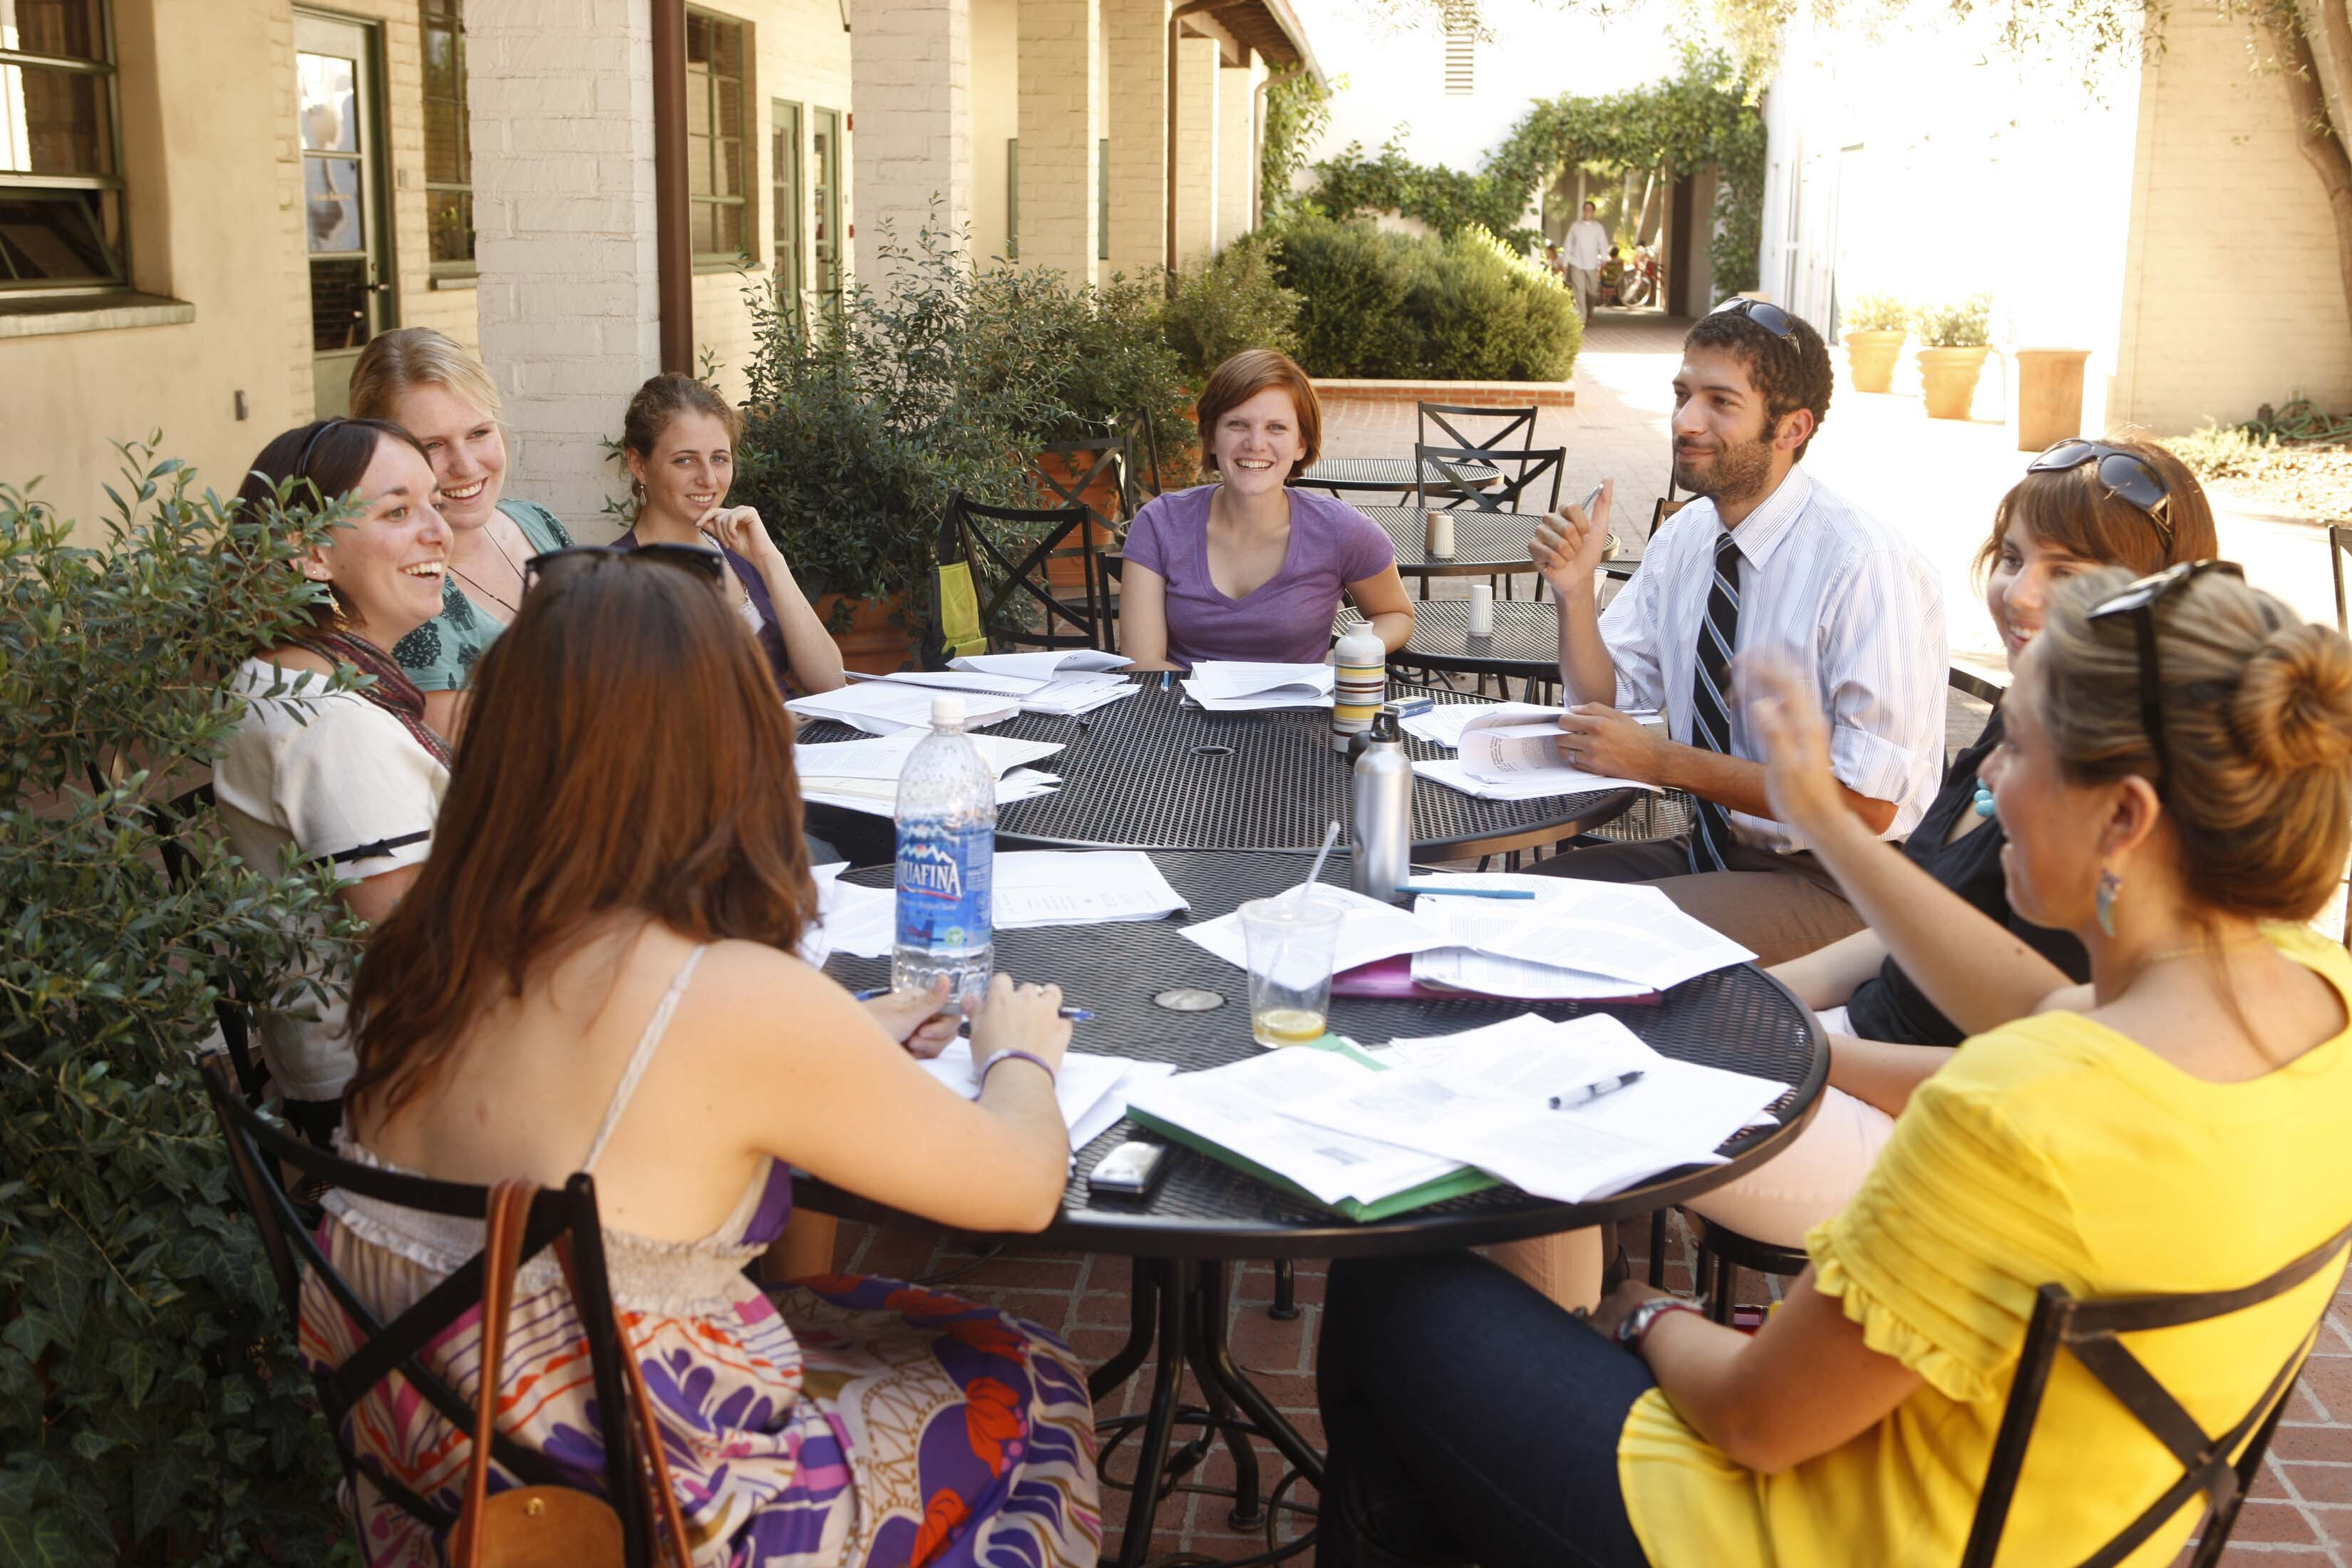 Scripps College Photo - Students meet with their professor for discussion in one of the many courtyards on the Scripps College campus.